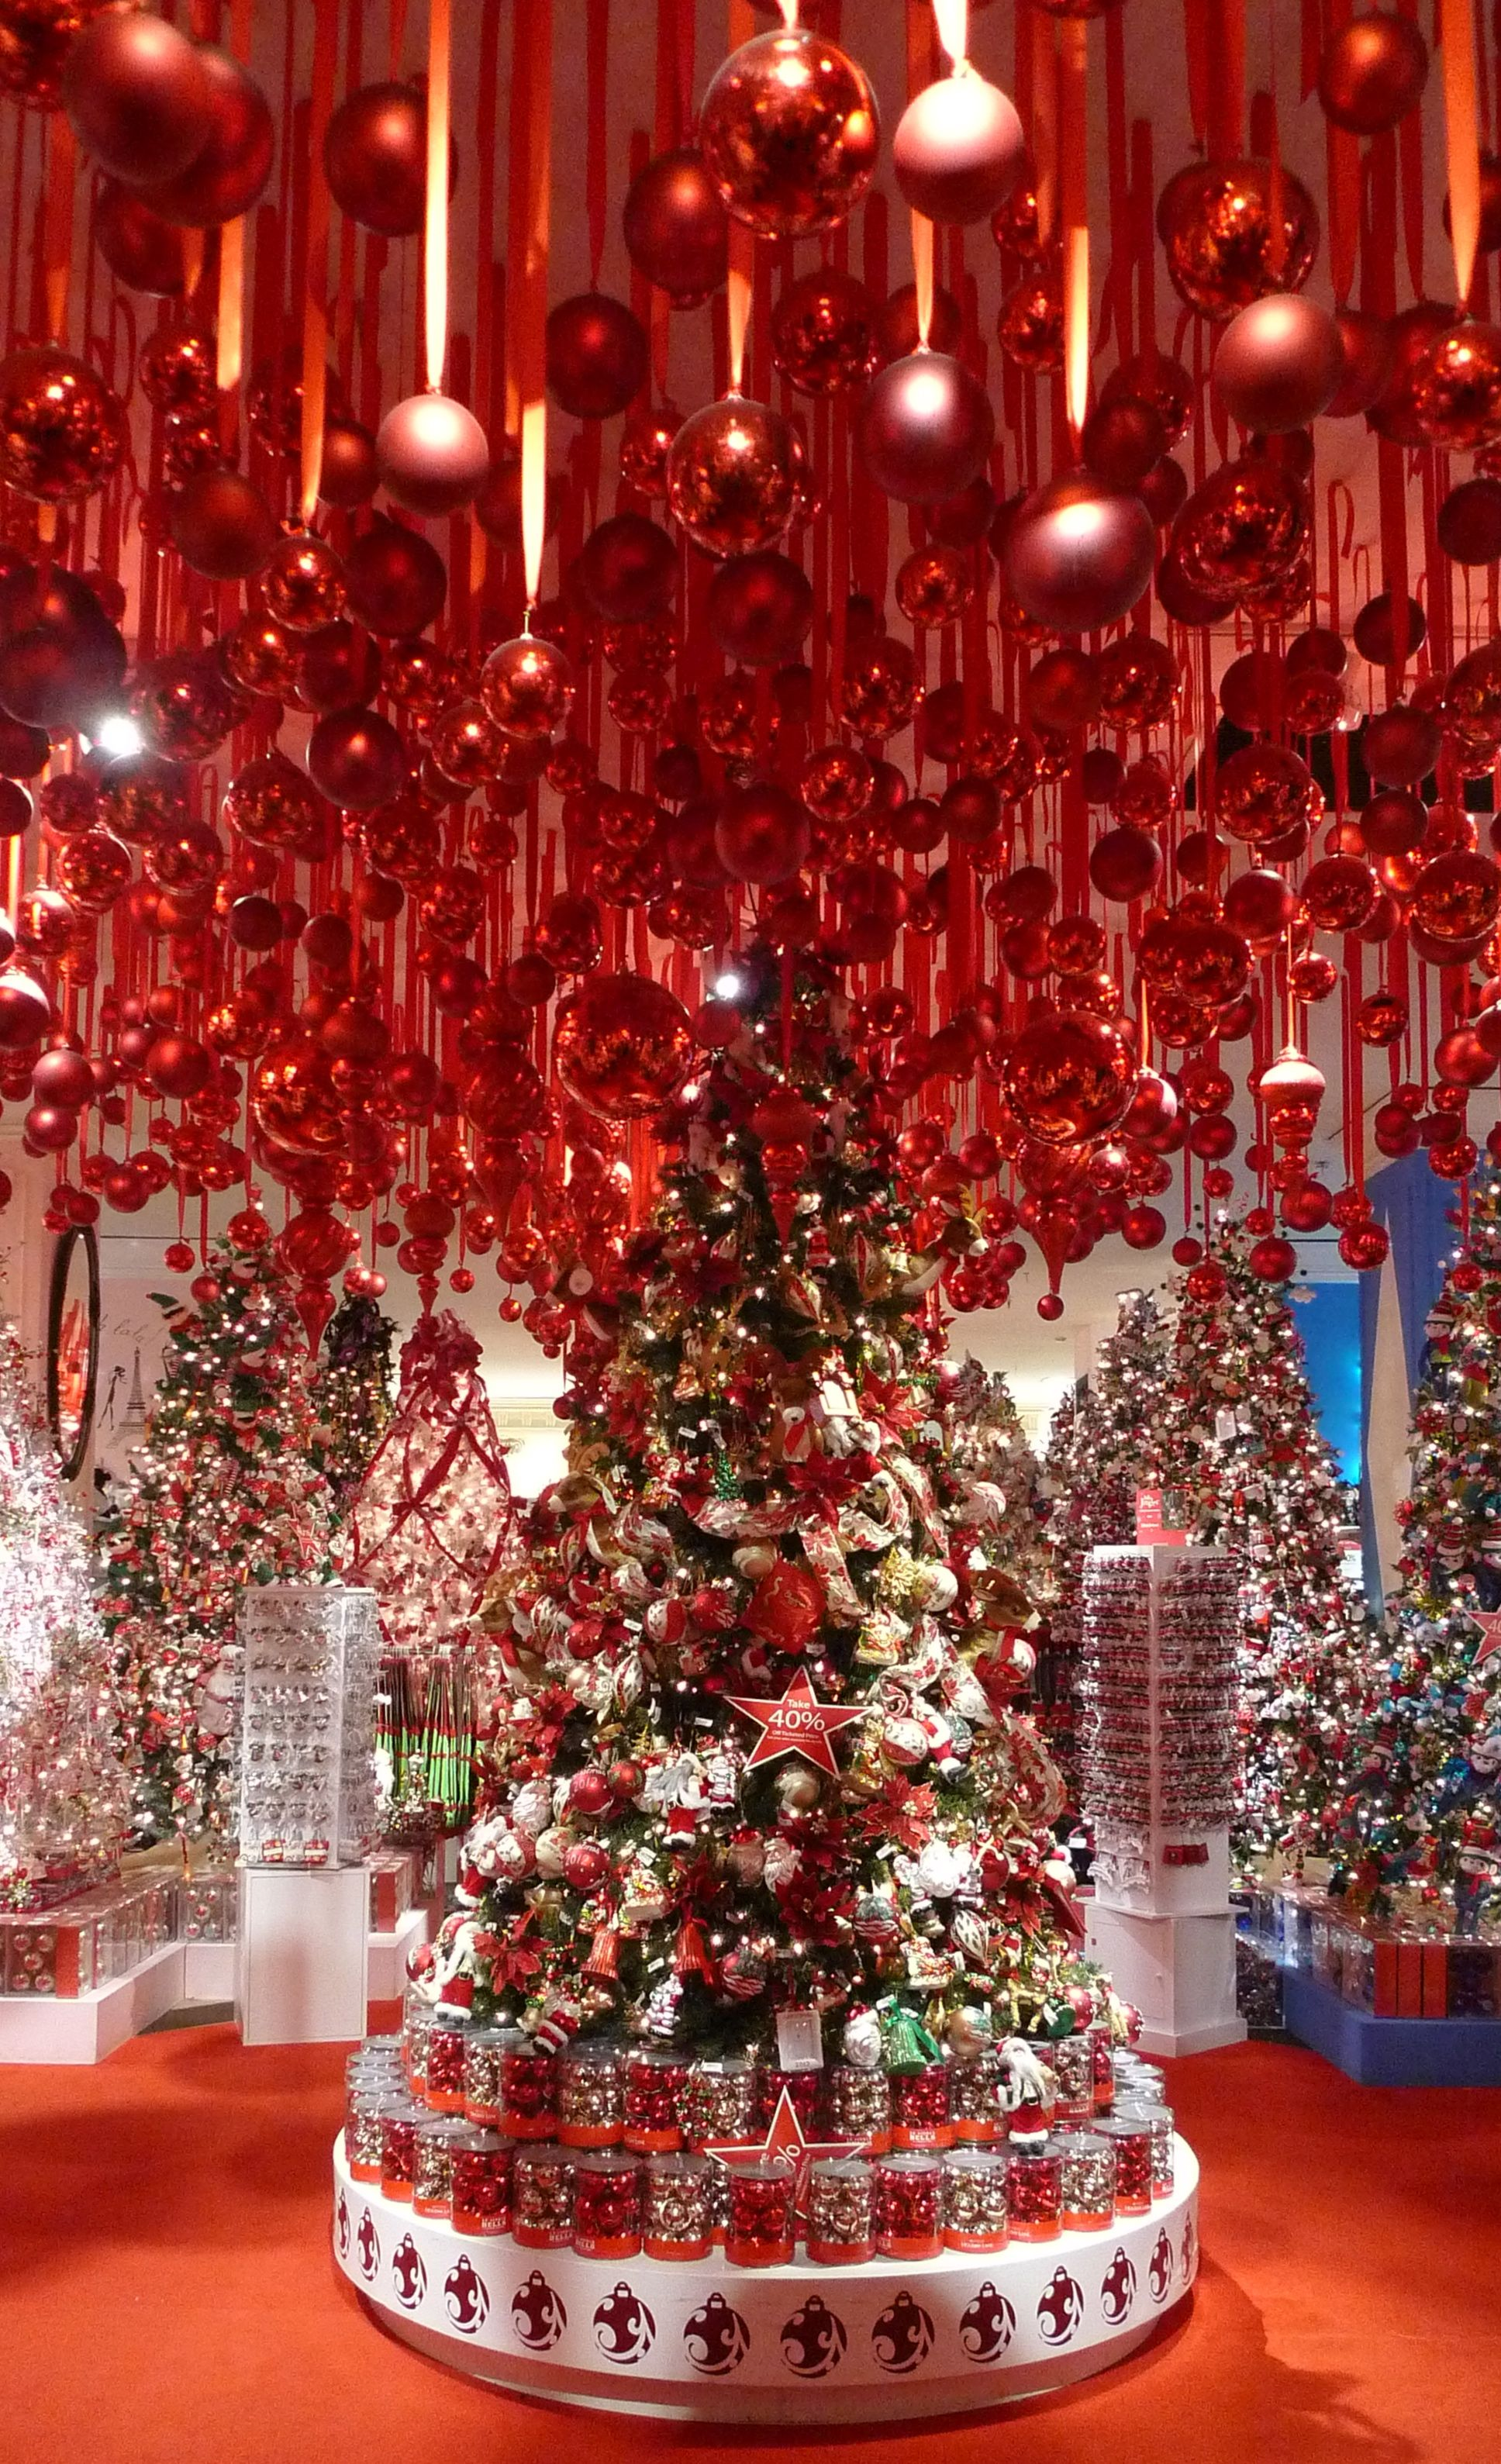 Macy s christmas decoration shop new york city my for Salon xmas decorations